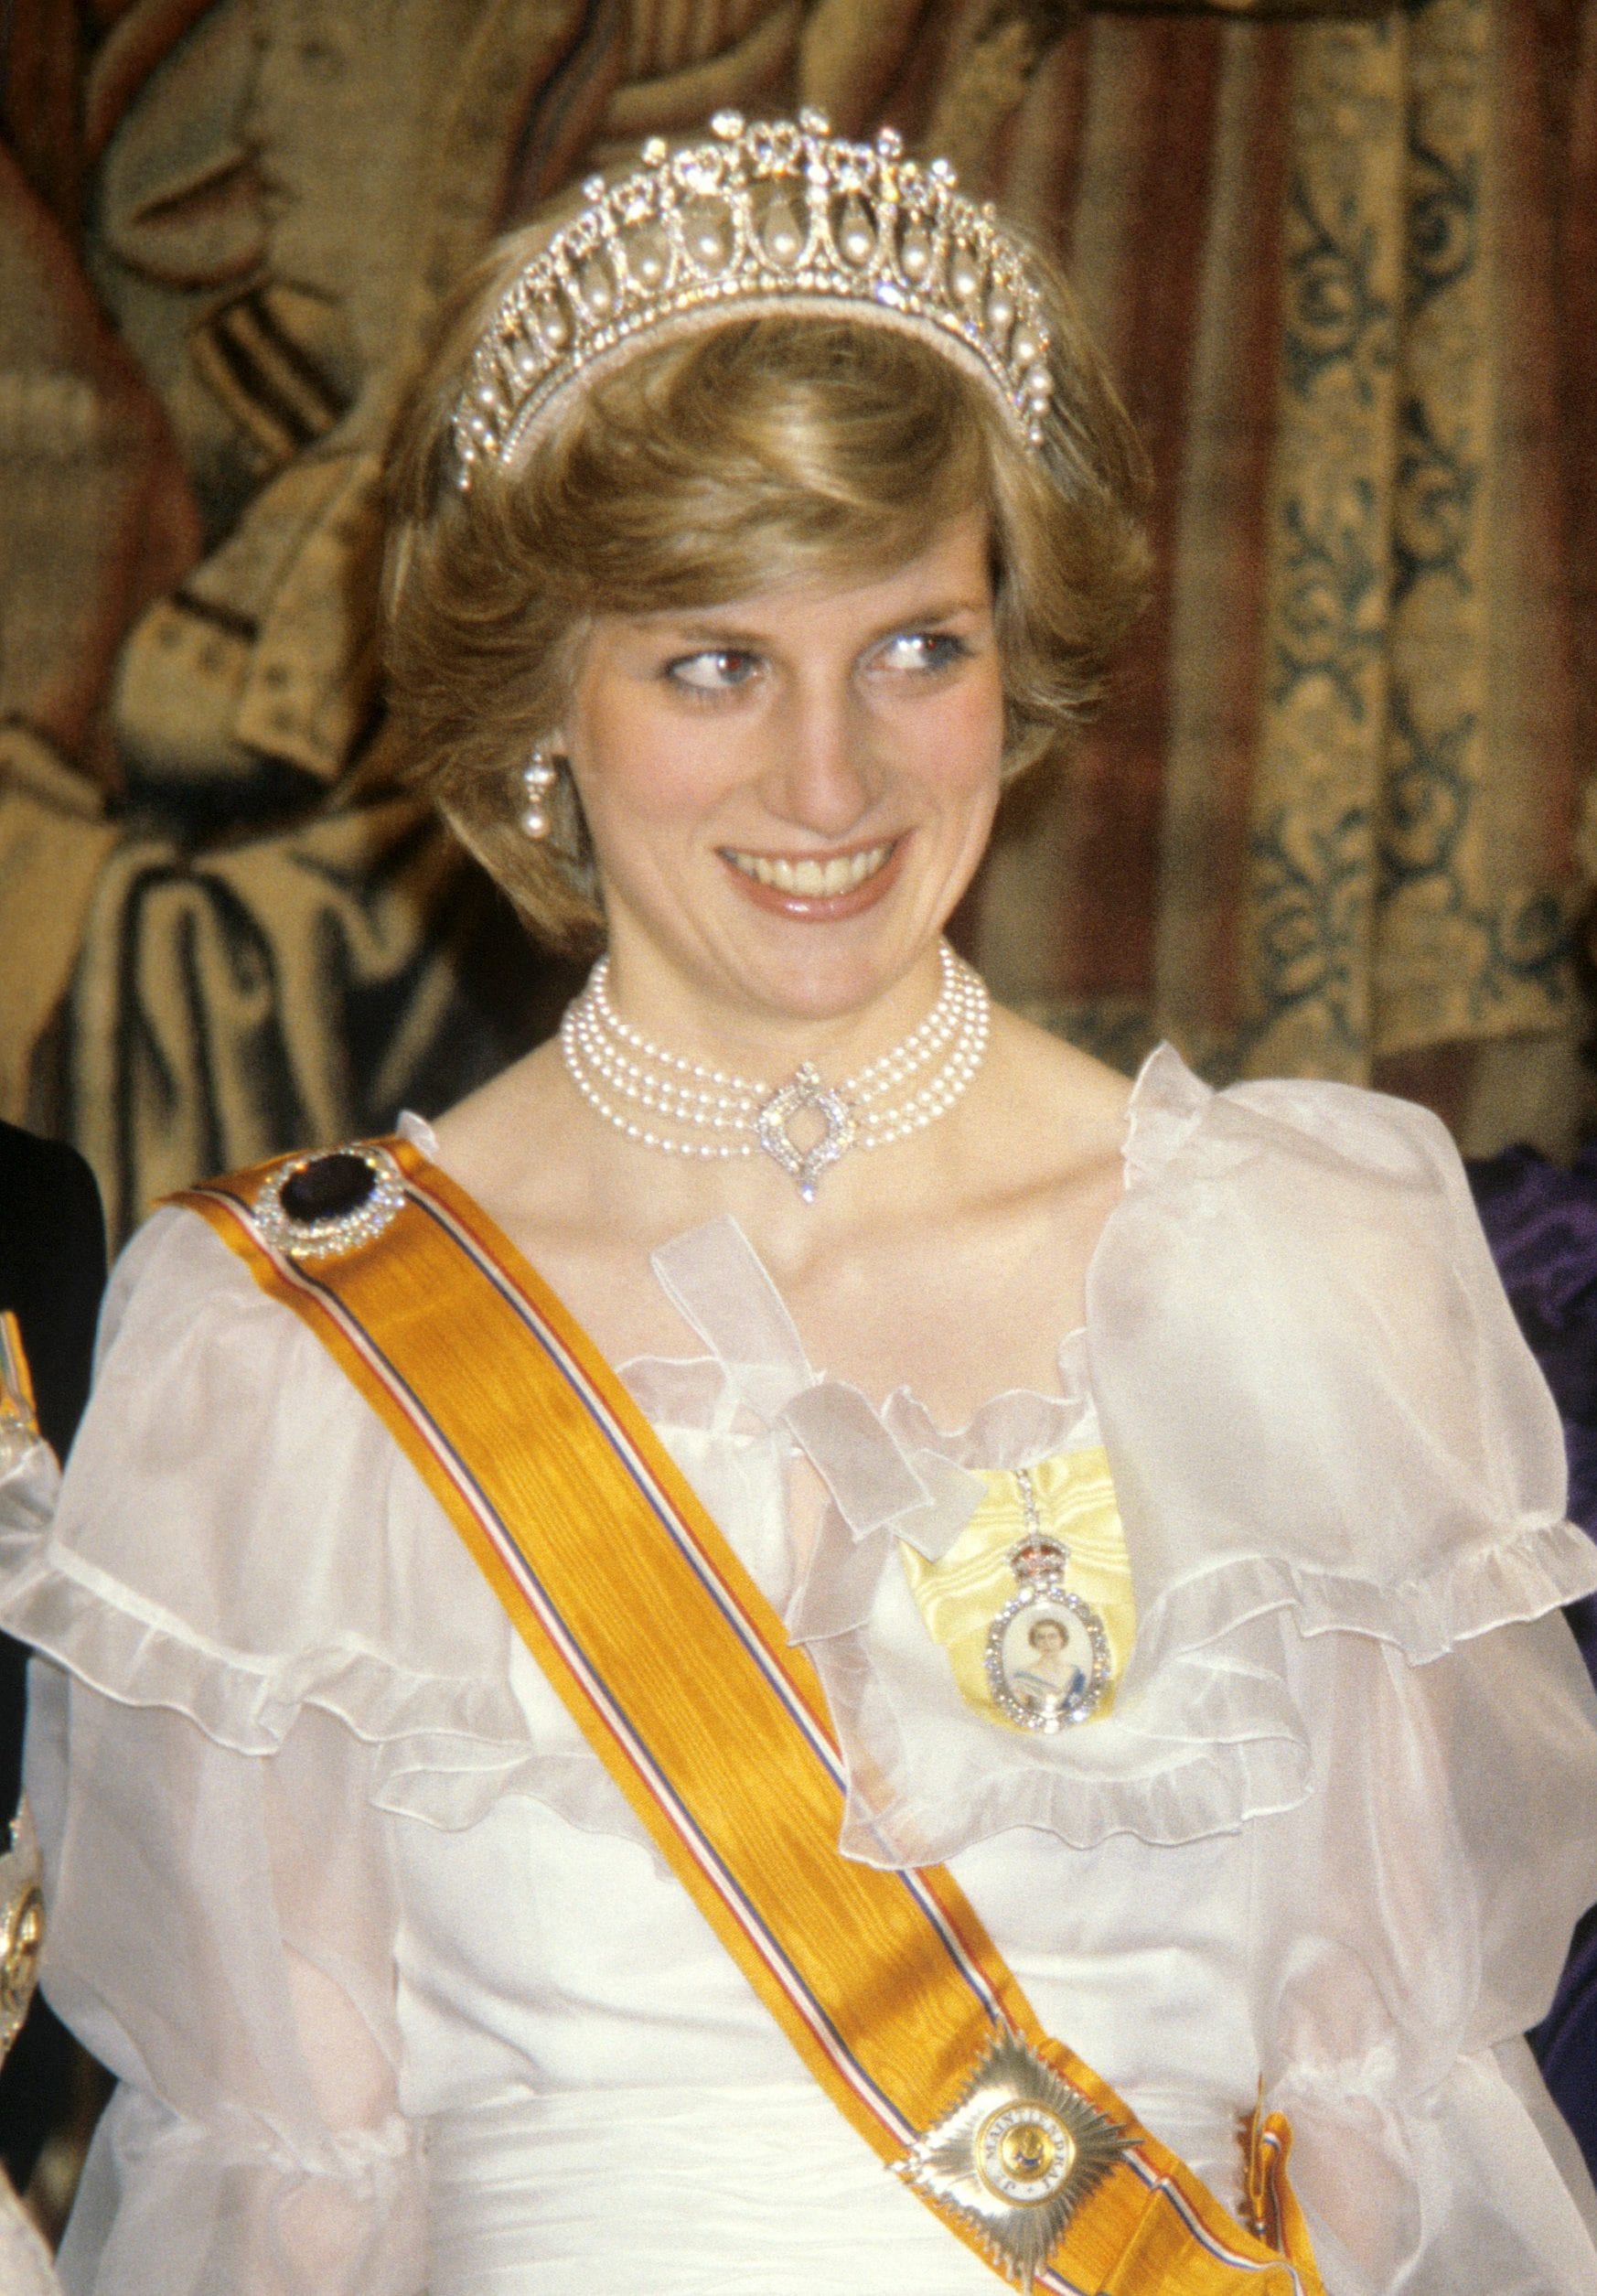 Princess Diana wearing the necklace at a state banquet for the Netherlands in 1982